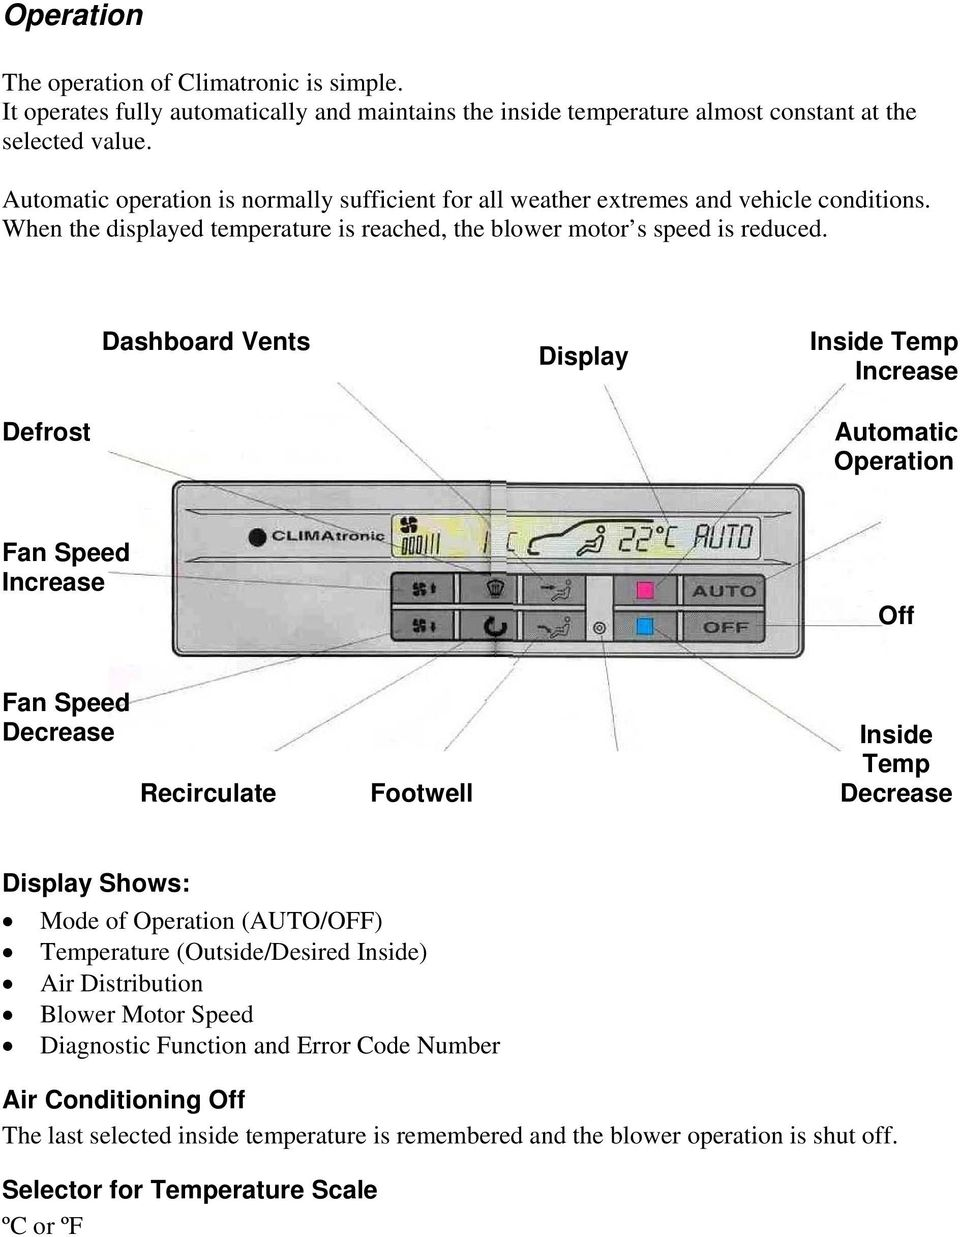 V A G Service Climatronic Climatronic Use At Your Own Risk This Wiring A  Non-Computer 700R4 Skoda Climatronic Wiring Diagram